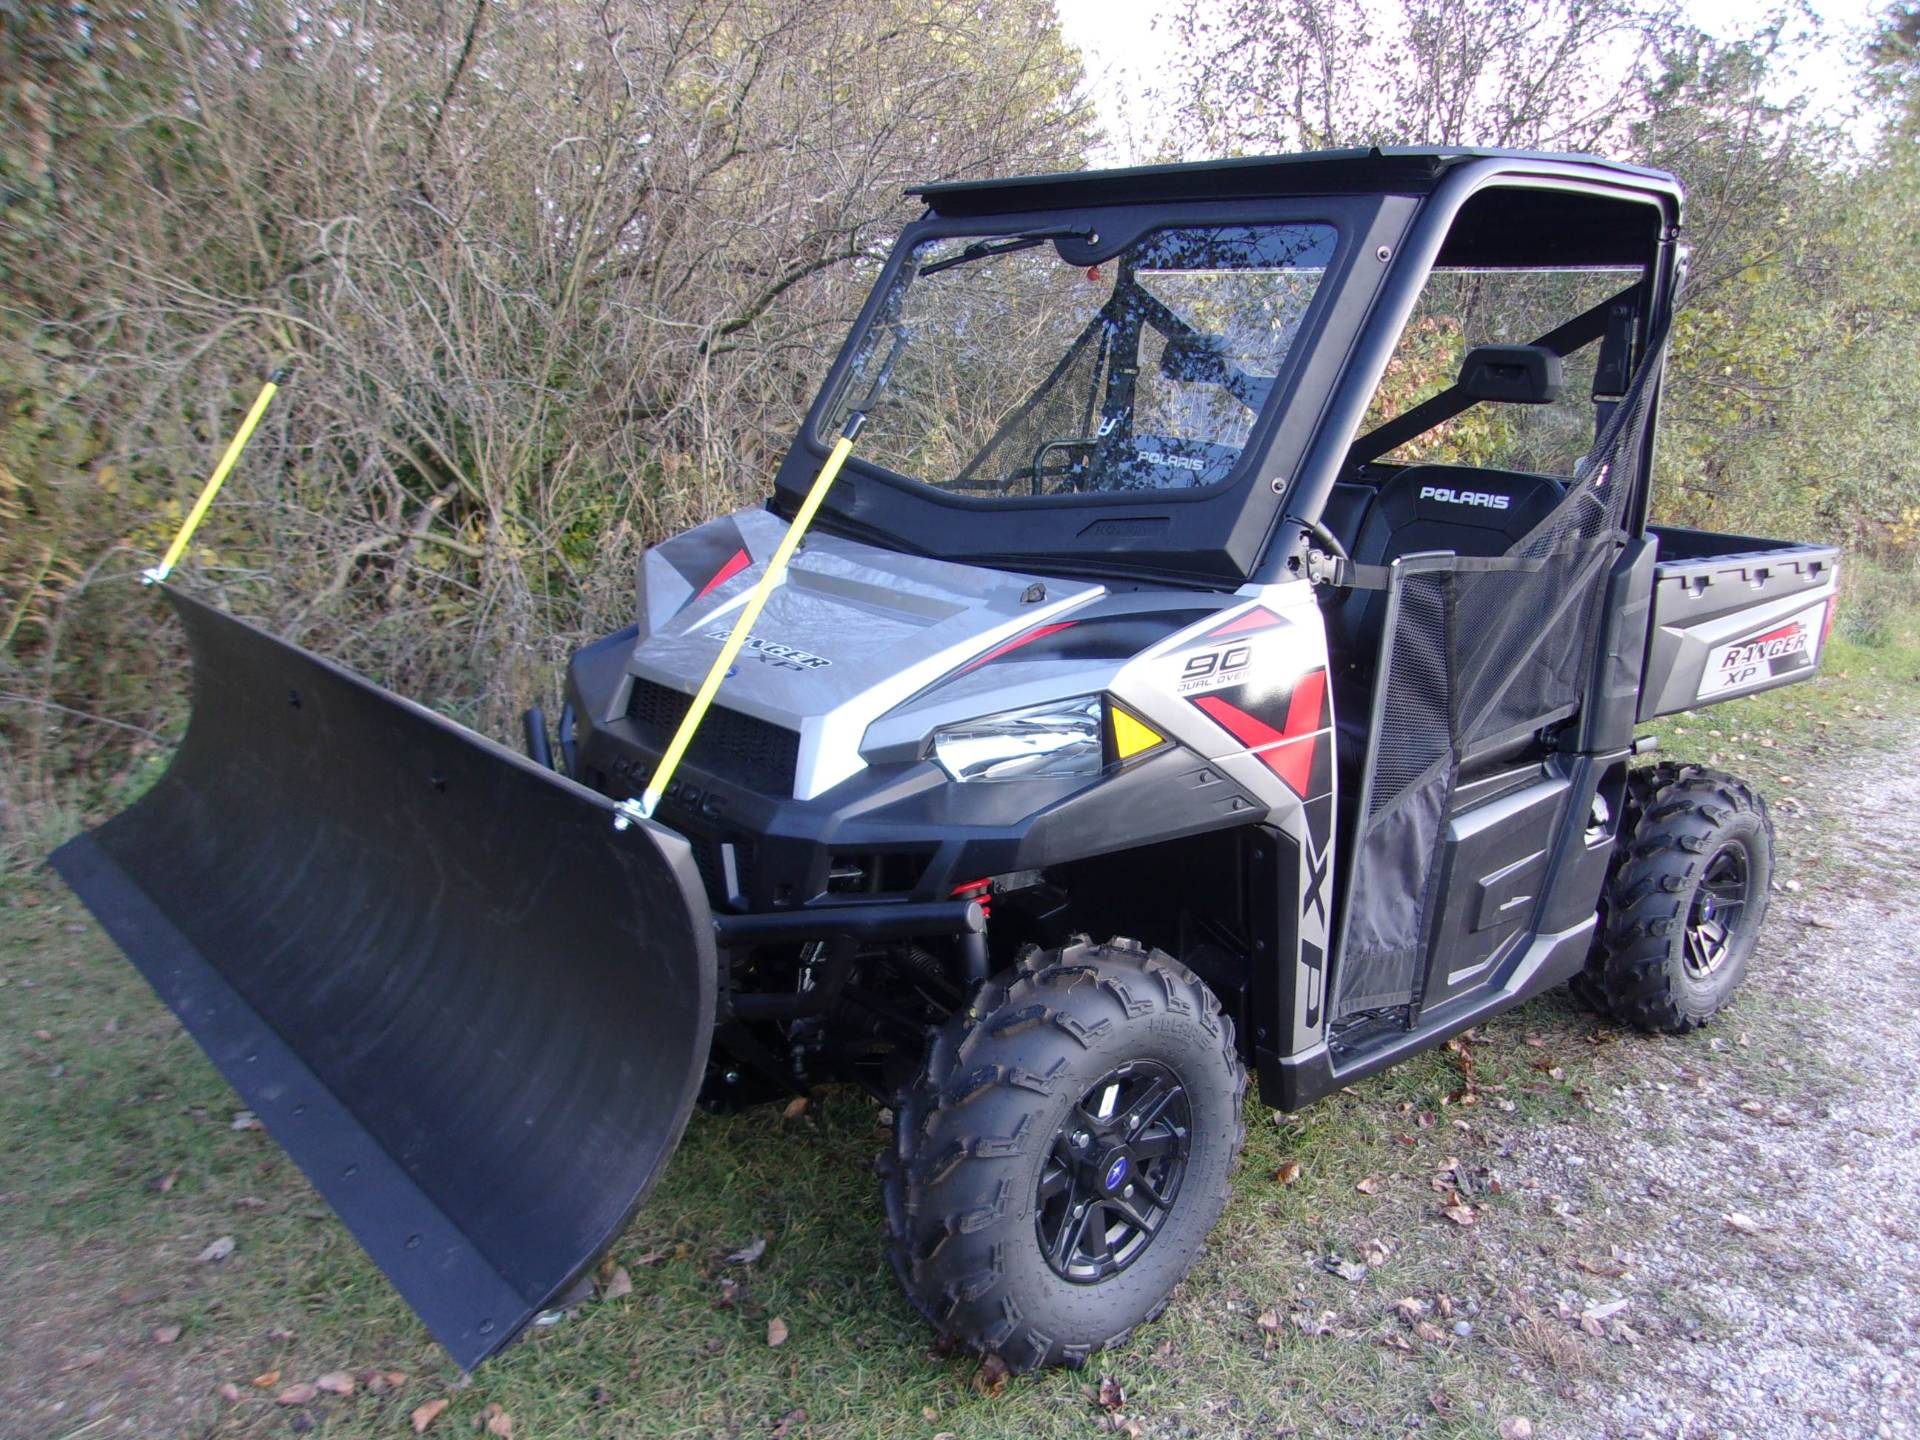 Polaris Ranger Xp 900 >> 2019 Polaris Ranger Xp 900 Eps In Mukwonago Wisconsin